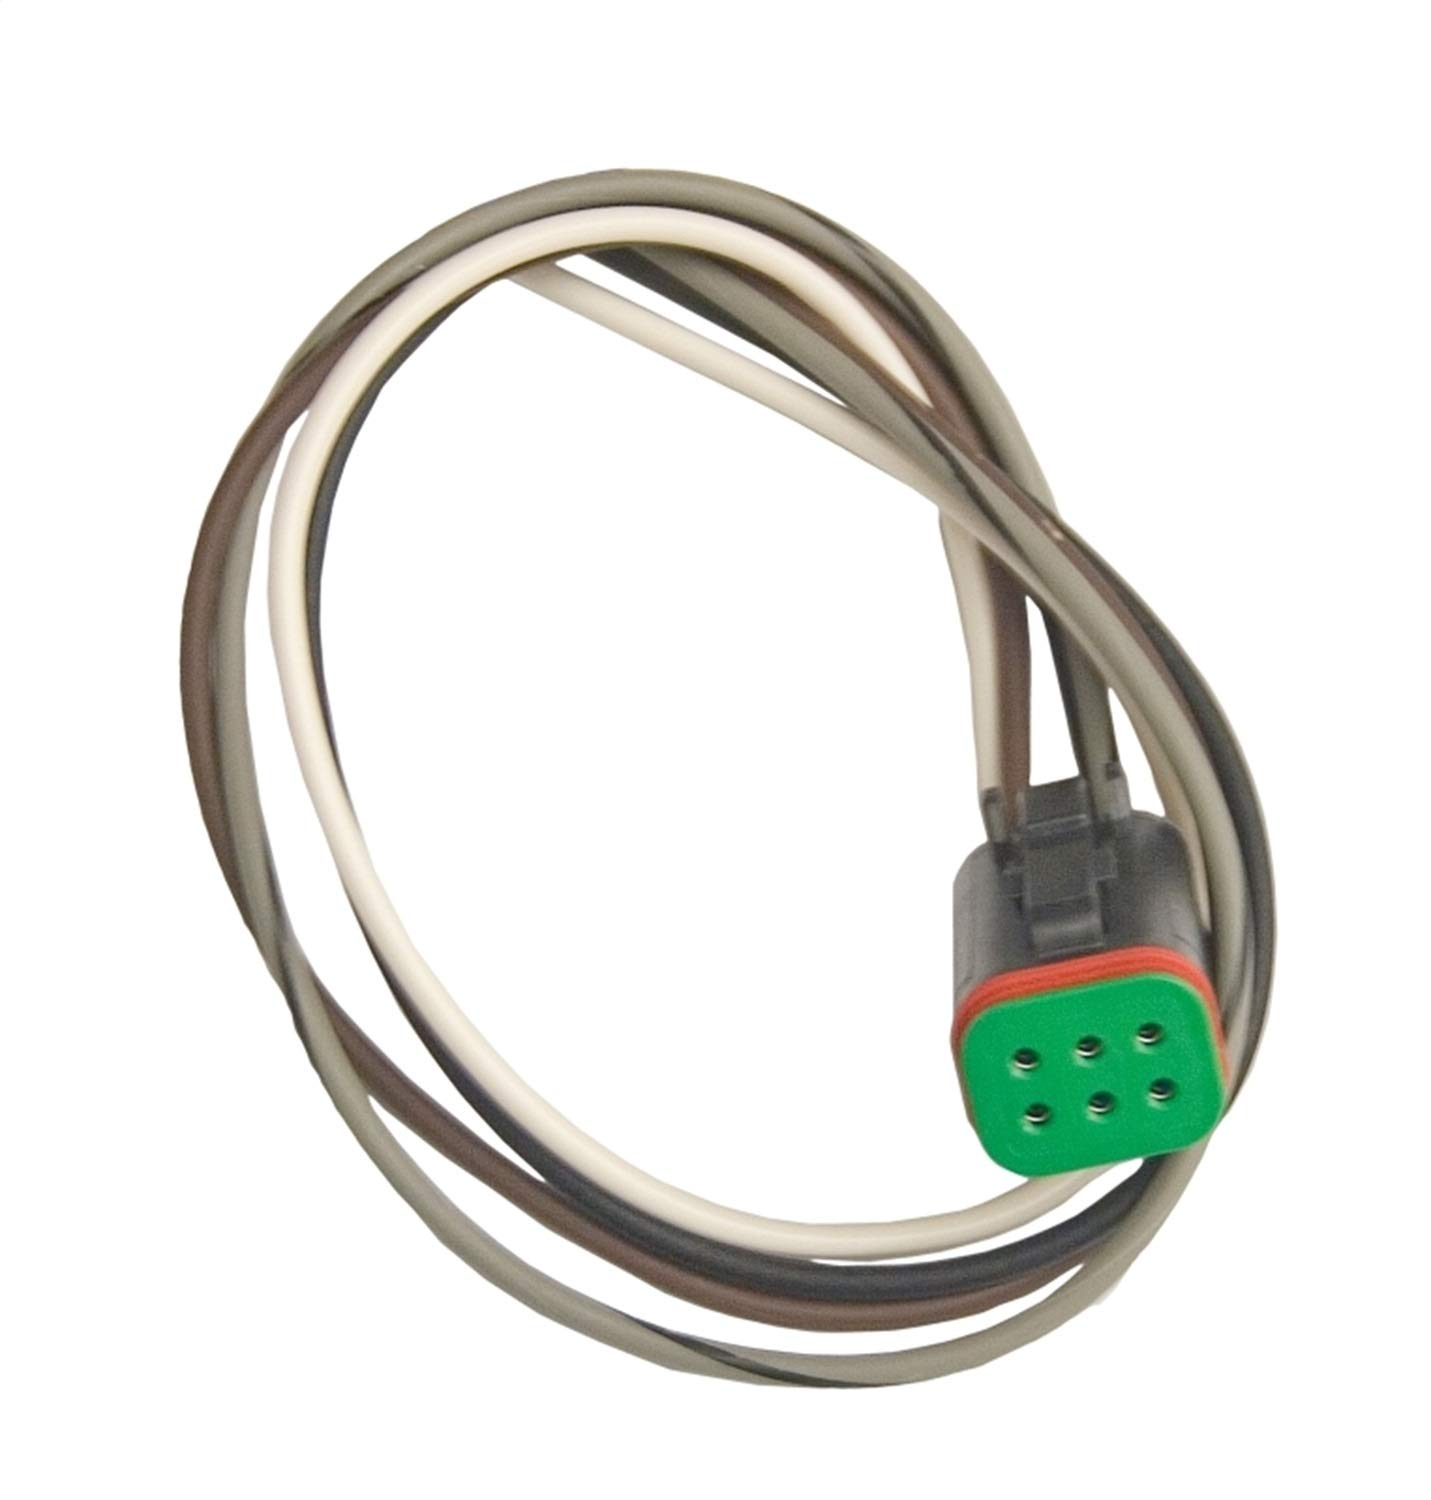 HELLA H84985451 355mm 6-Pin Pigtail with DT Connector